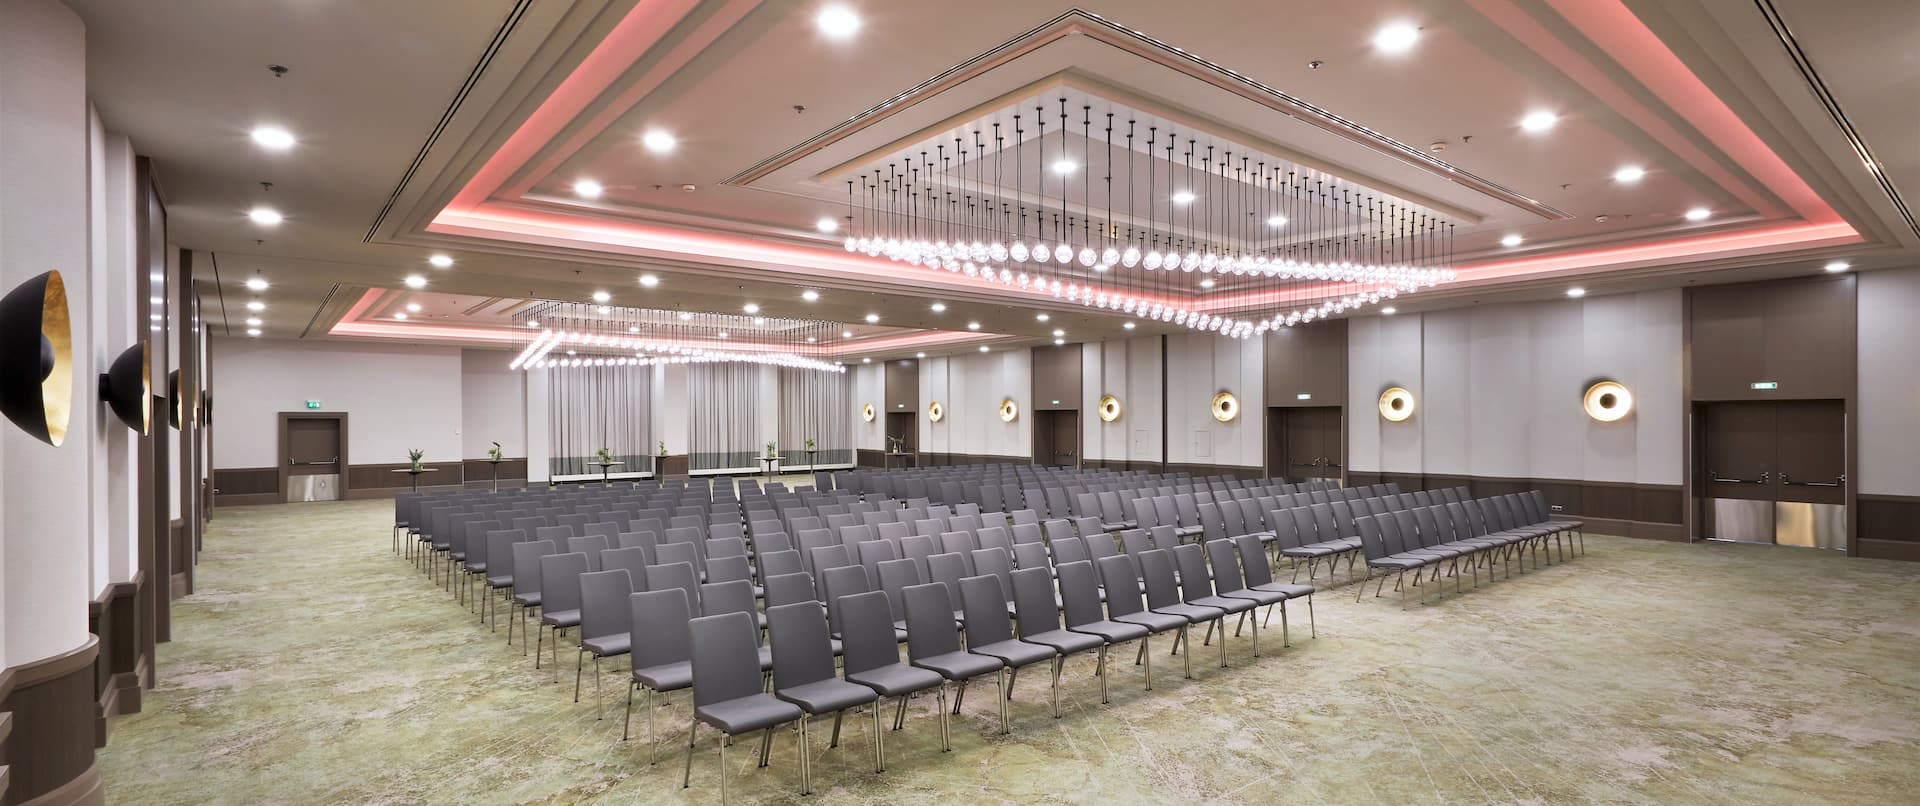 Frankfurt Ballroom with rows of seating